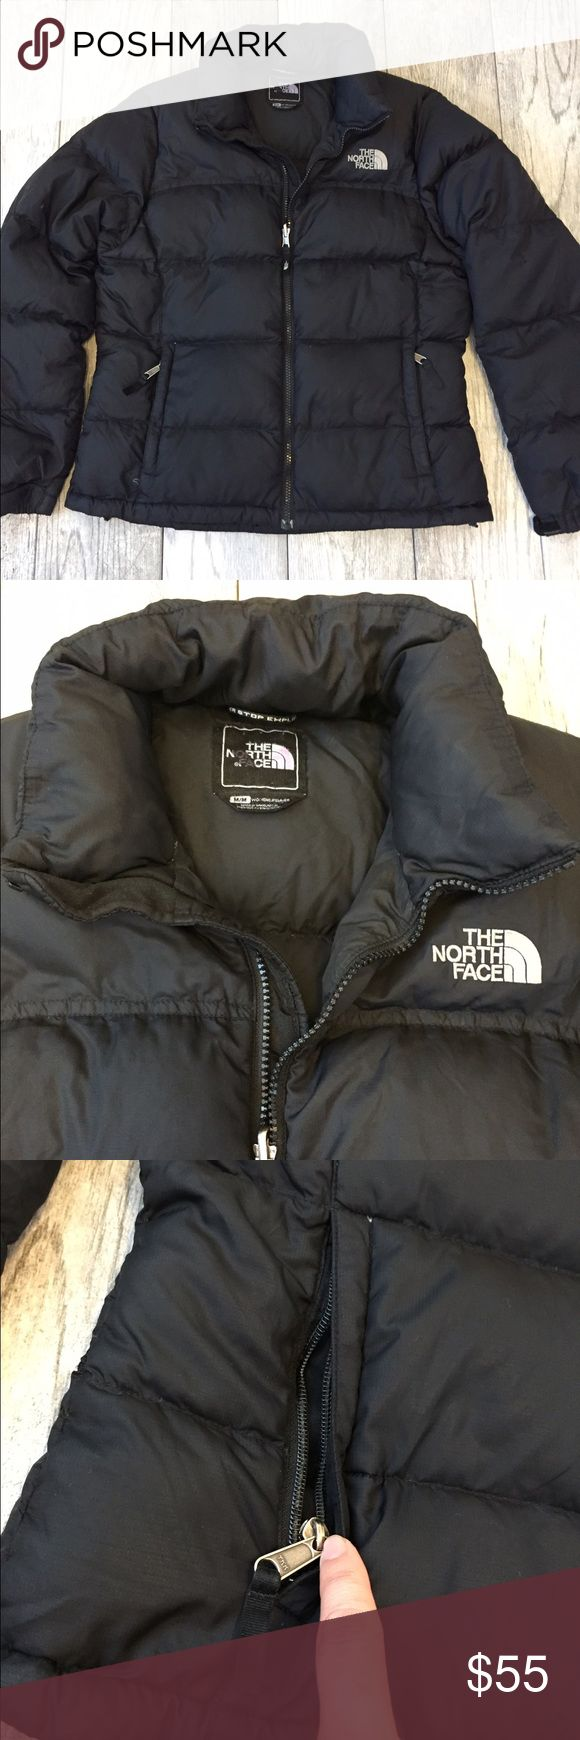 Women's North Face Jacket Puffed Jacket with sleek quilt lines, the classic Nuptse jacket provides lofty, puffed warmth with deep baffles that are stuffed with 700-fill goose down to capture warmth where it counts. Super comfy and warm puffer North Face Jacket. Zipper is broken on the left side. You can see it when worn. North Face Jackets & Coats Puffers